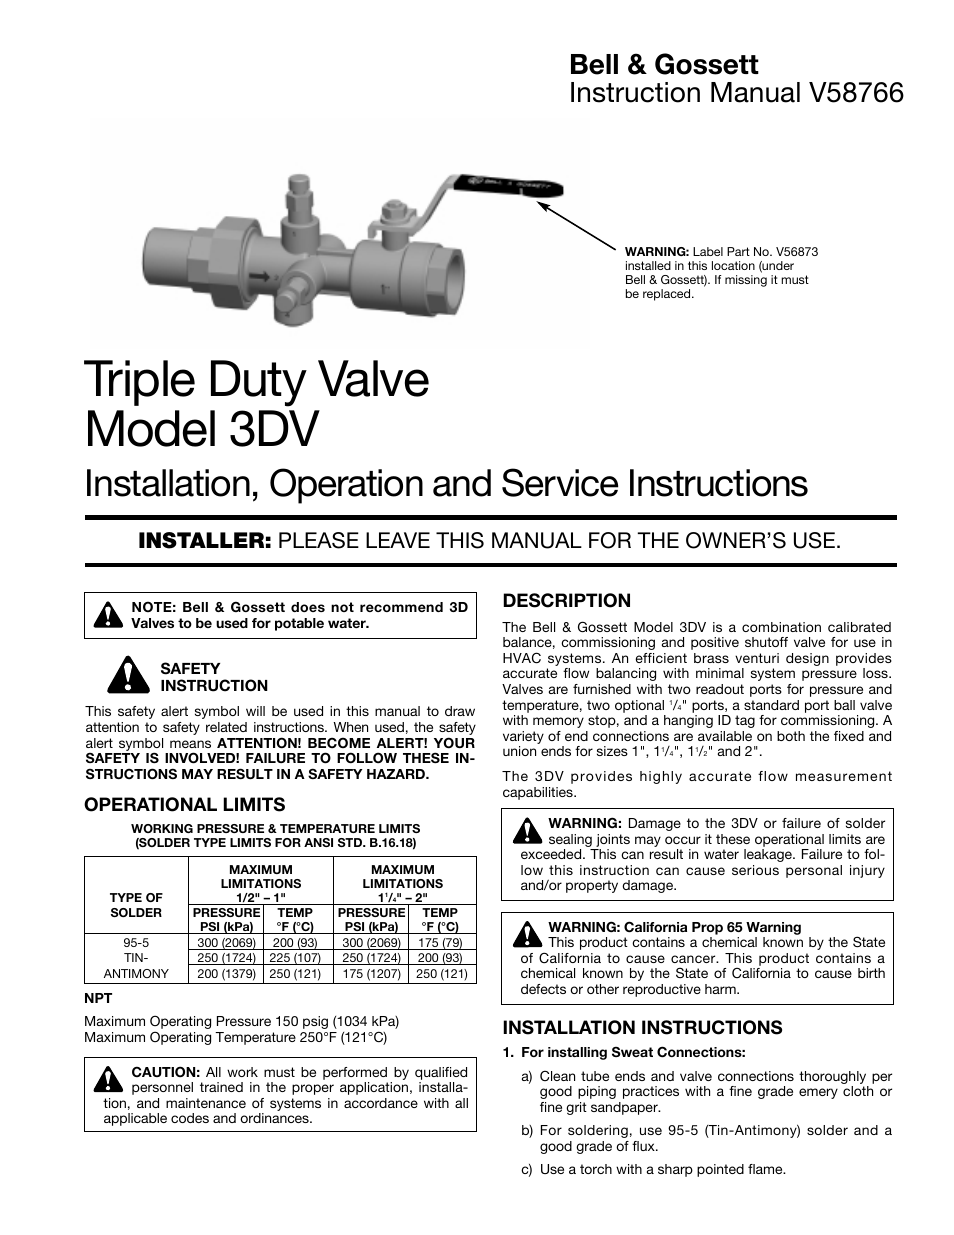 Triple Duty Valve Symbol Diagram Electrical Wiring Diagrams Piping Bell Gossett V58766 Model 3dv User Manual 2 Pages Check